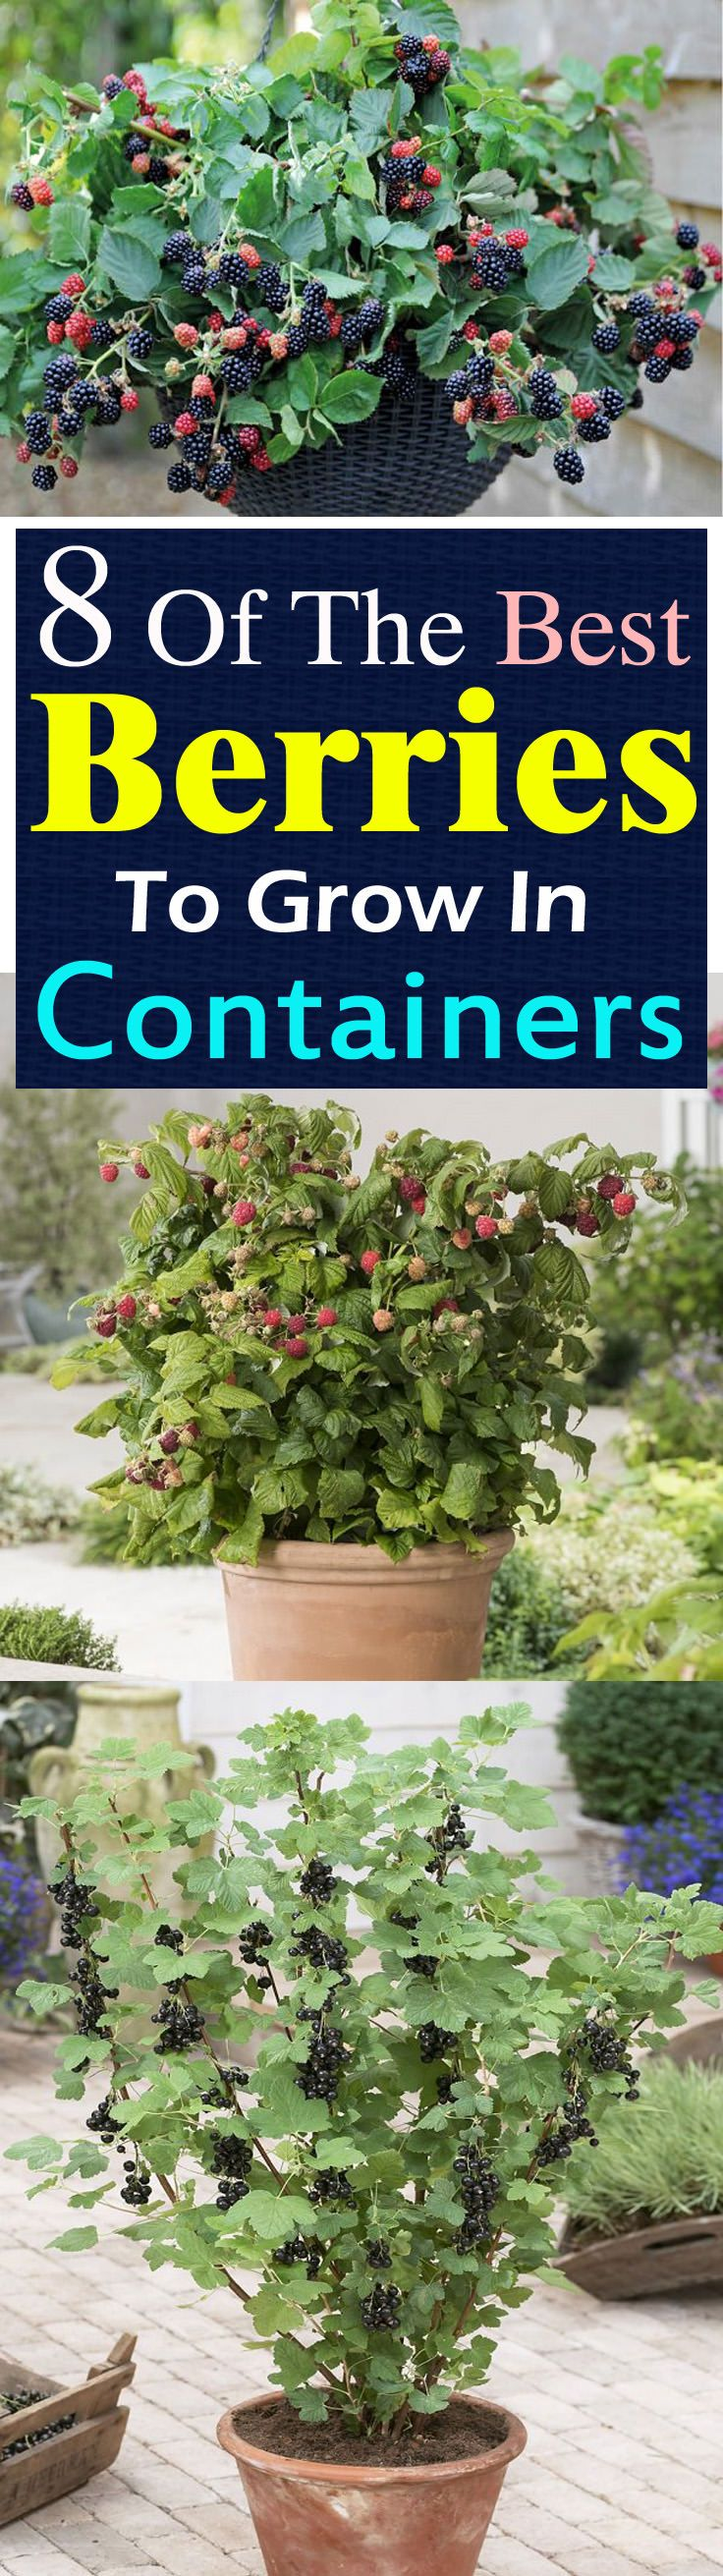 ~ Want to grow berries? But what to do if you don't have space to plant them? Growing berries in containers is the answer!